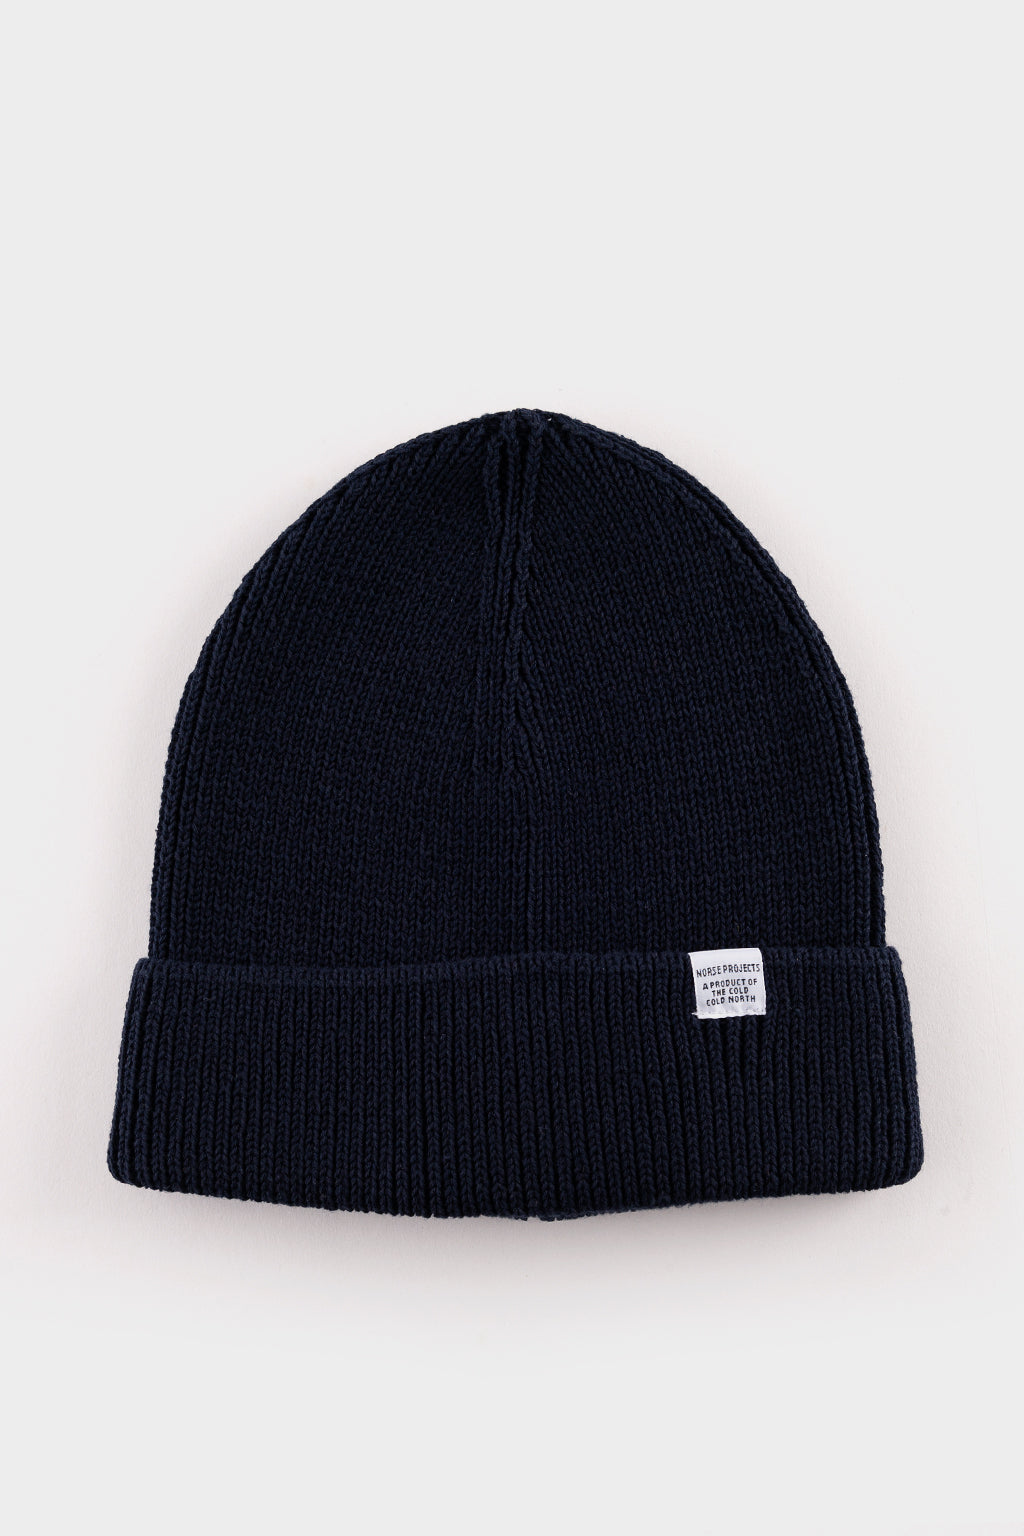 b684380be Norse Projects Cotton watch Beanie Dark Navy – academyclothes